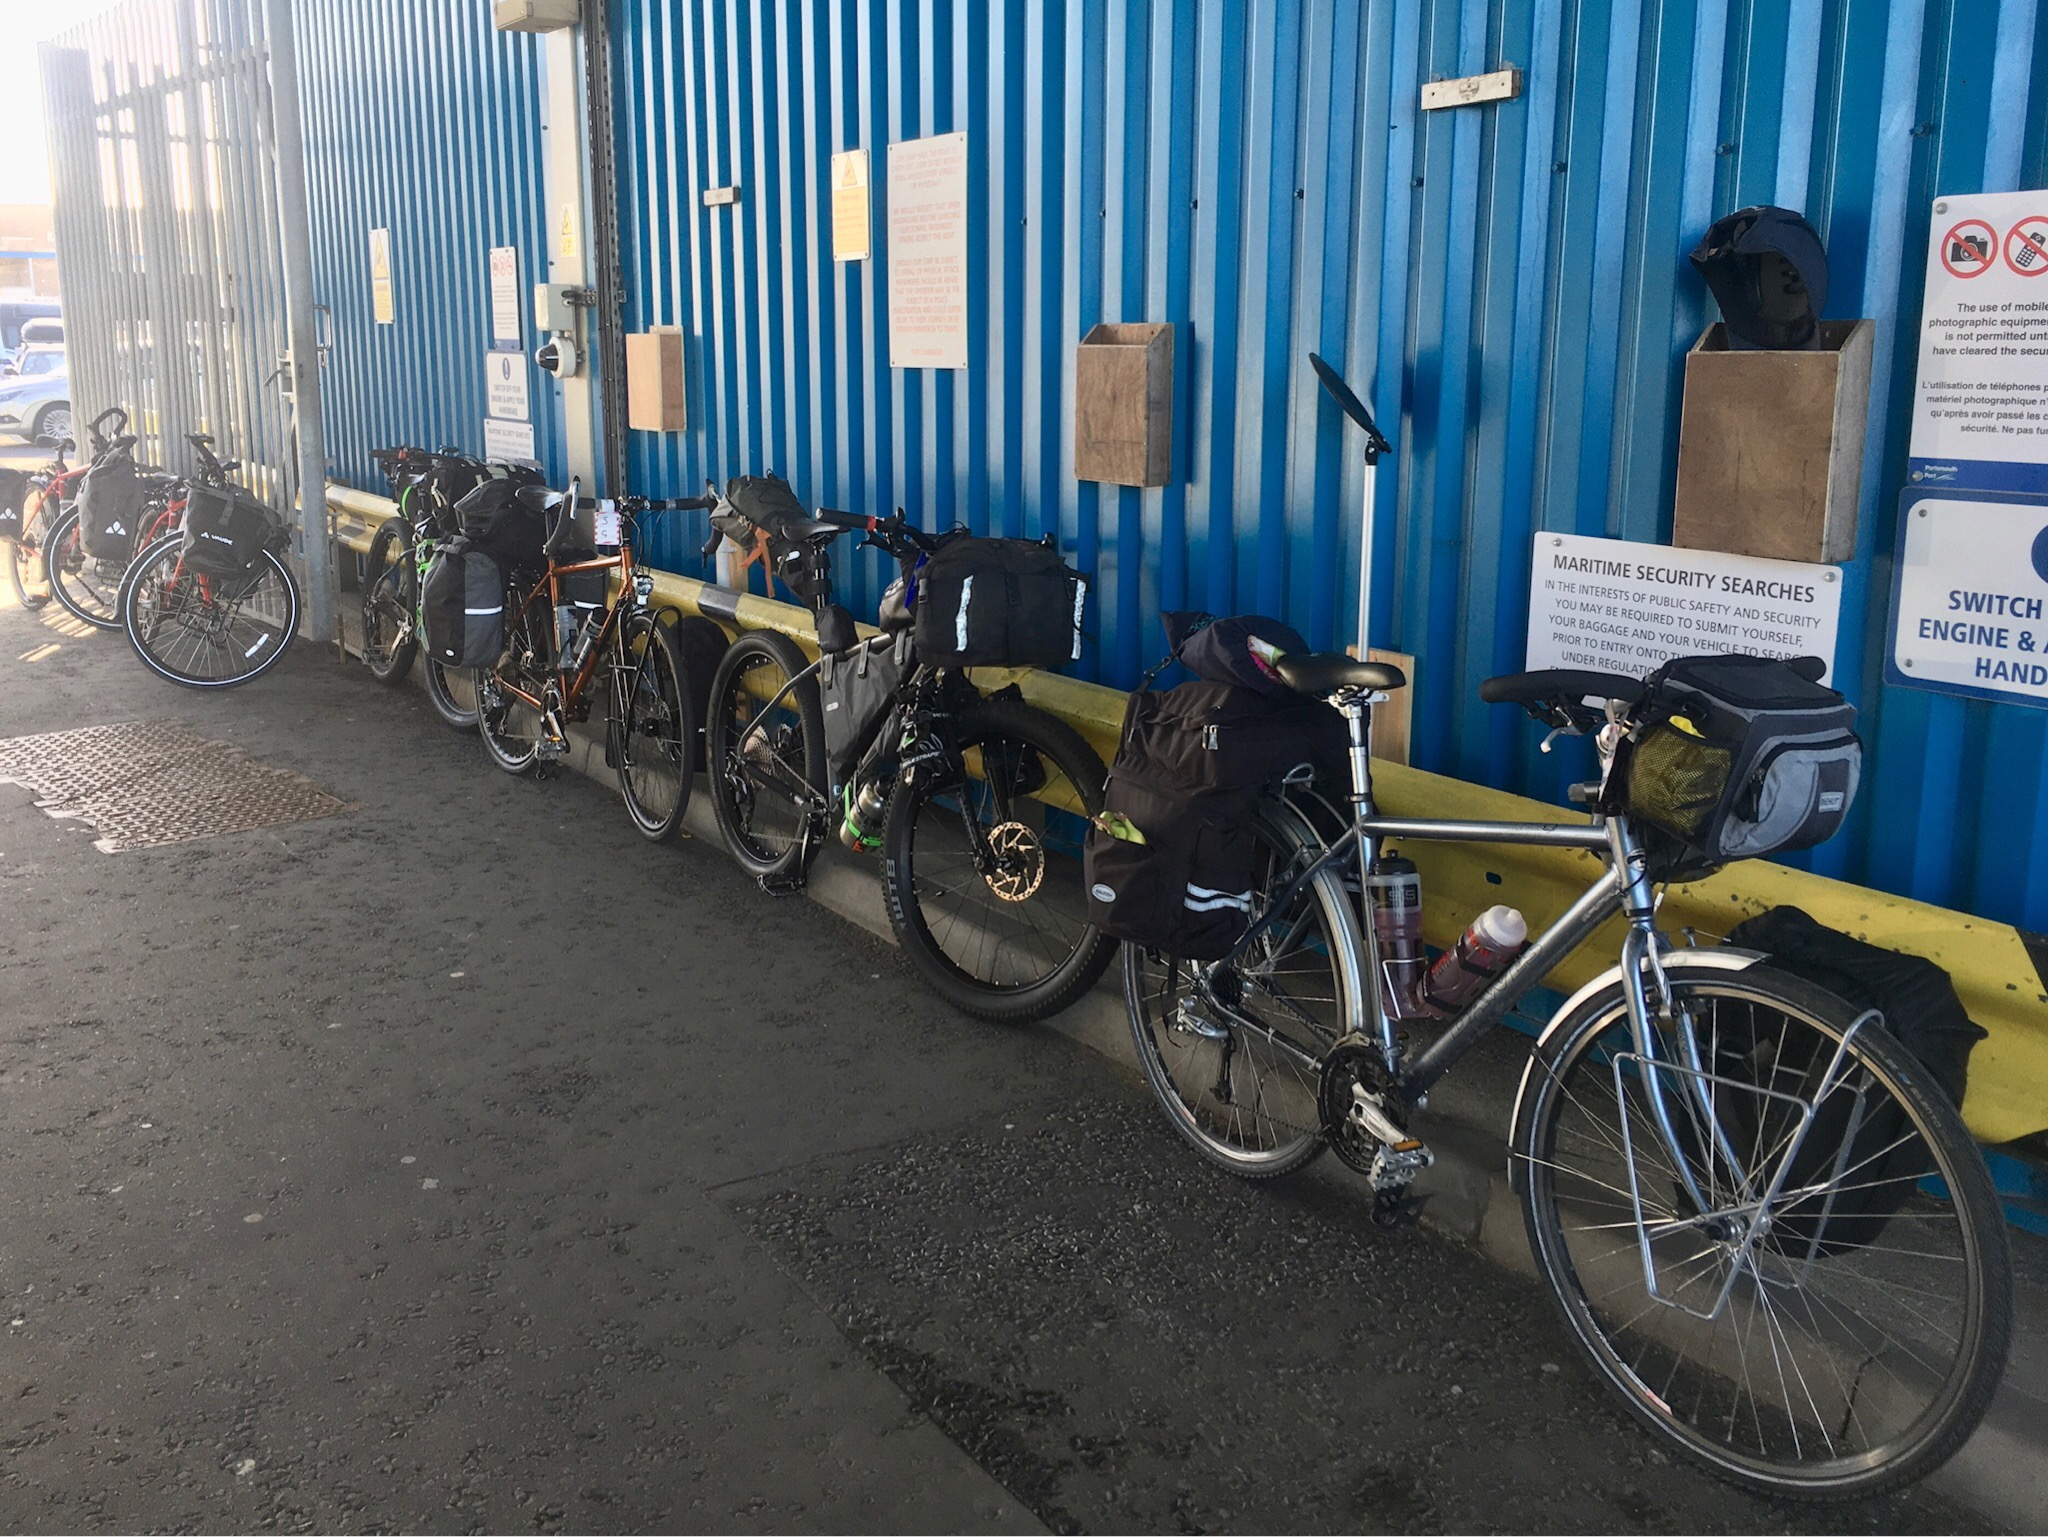 Bikes at Portsmouth Harbour